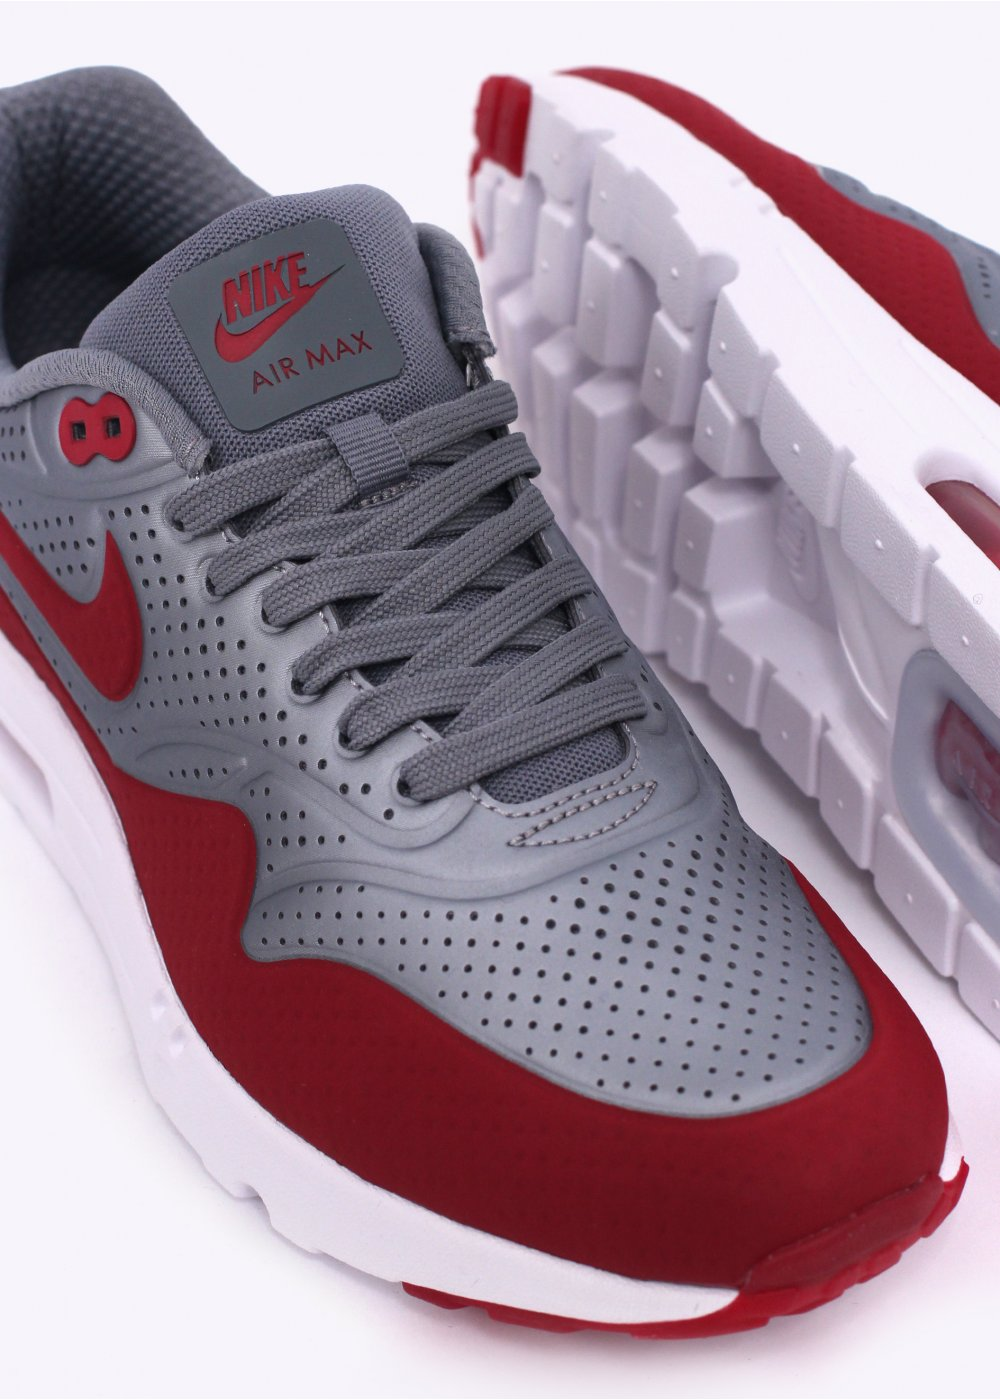 wholesale dealer fa256 53256 Air Max 1 Ultra Moire Trainers - Metallic Cool Grey   Gym Red